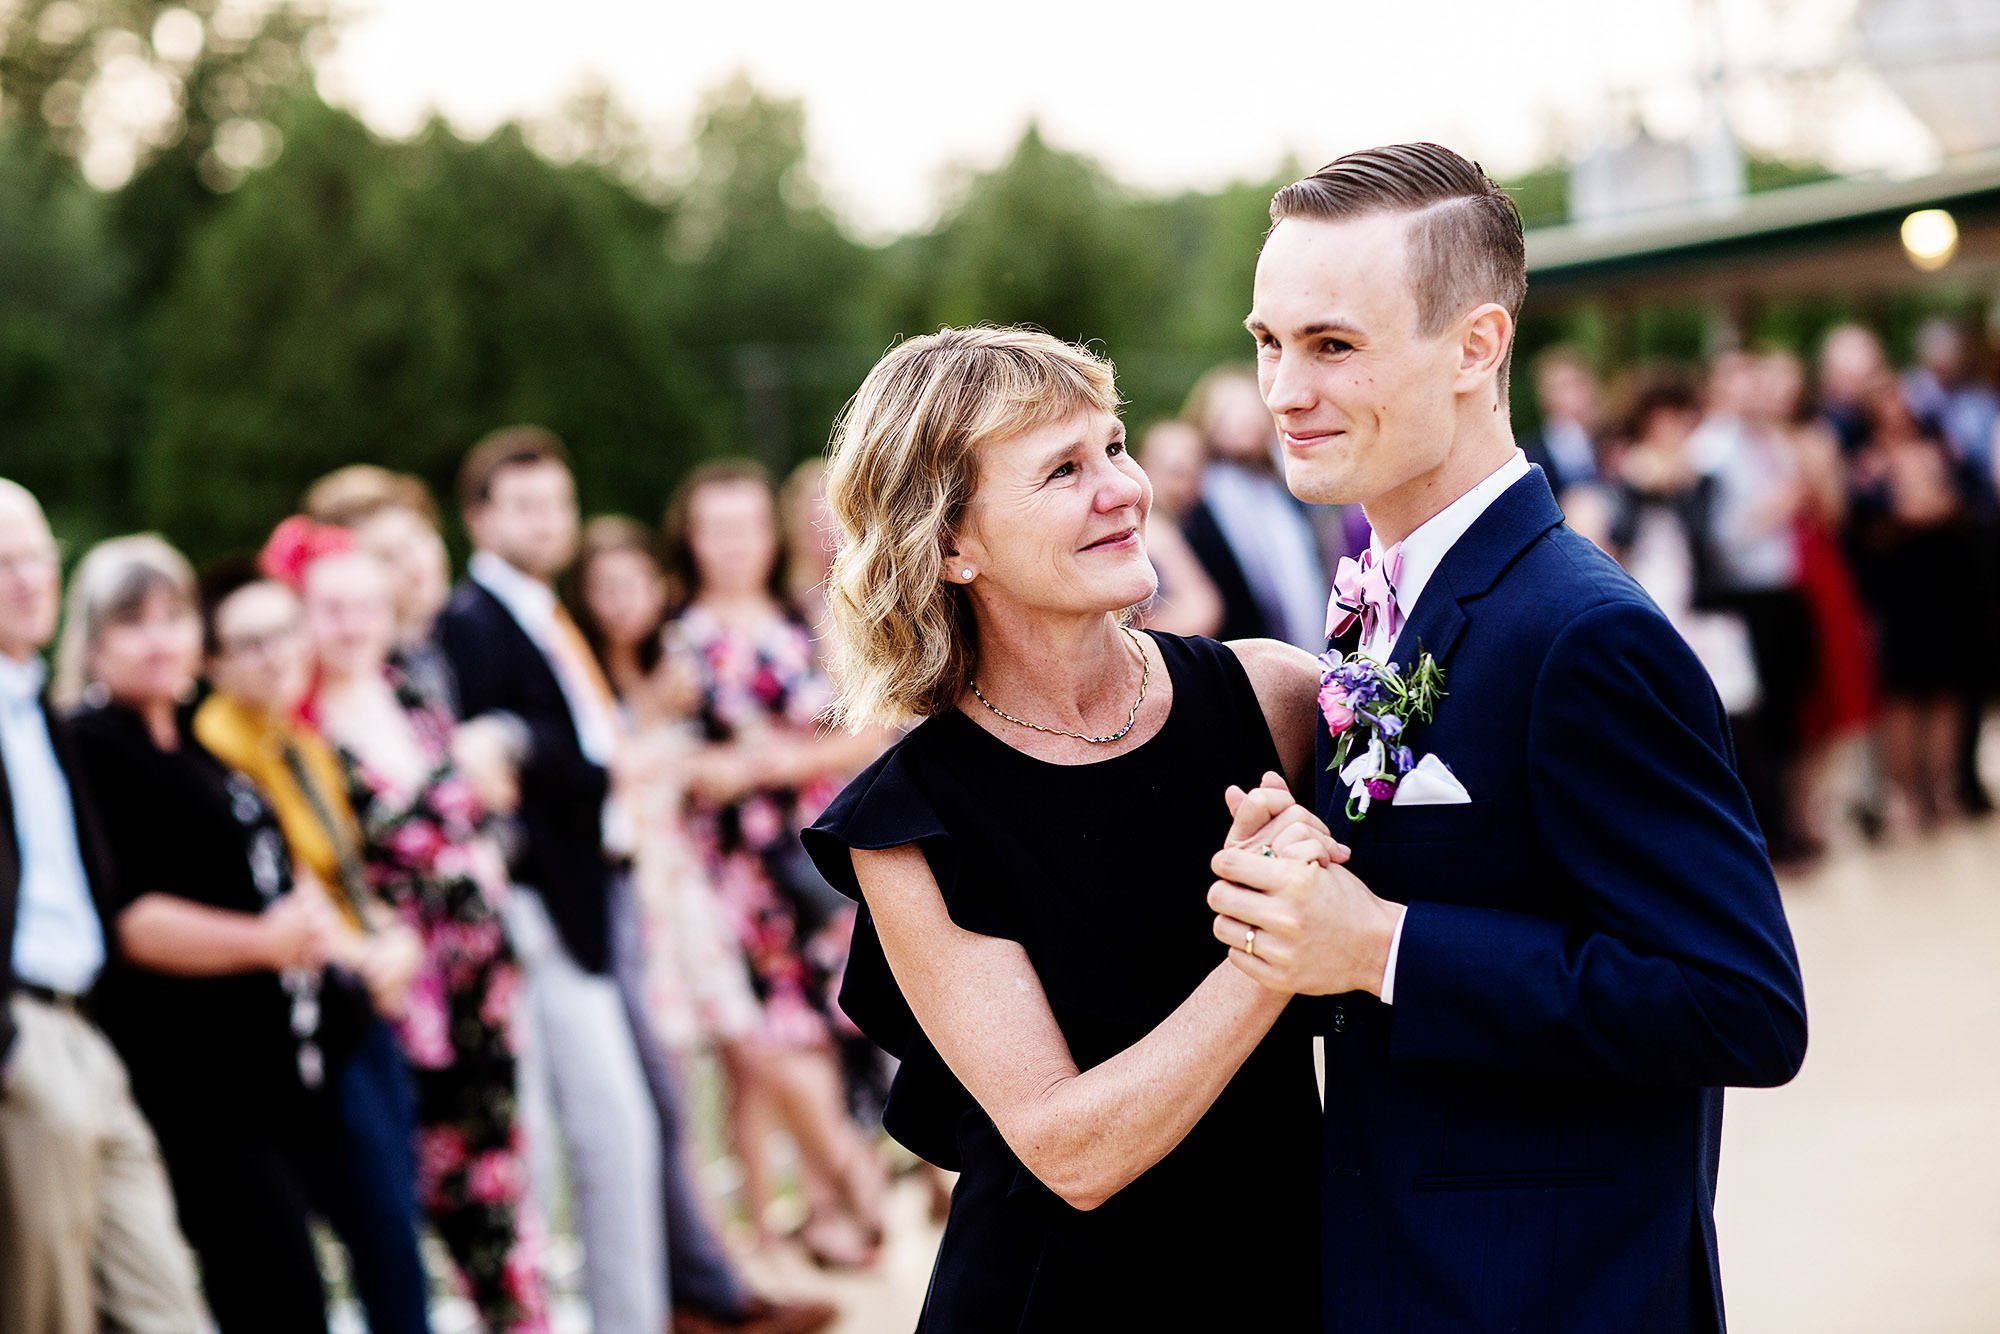 Shelburne Museum Wedding  I  The groom dances with his mother during the wedding reception.